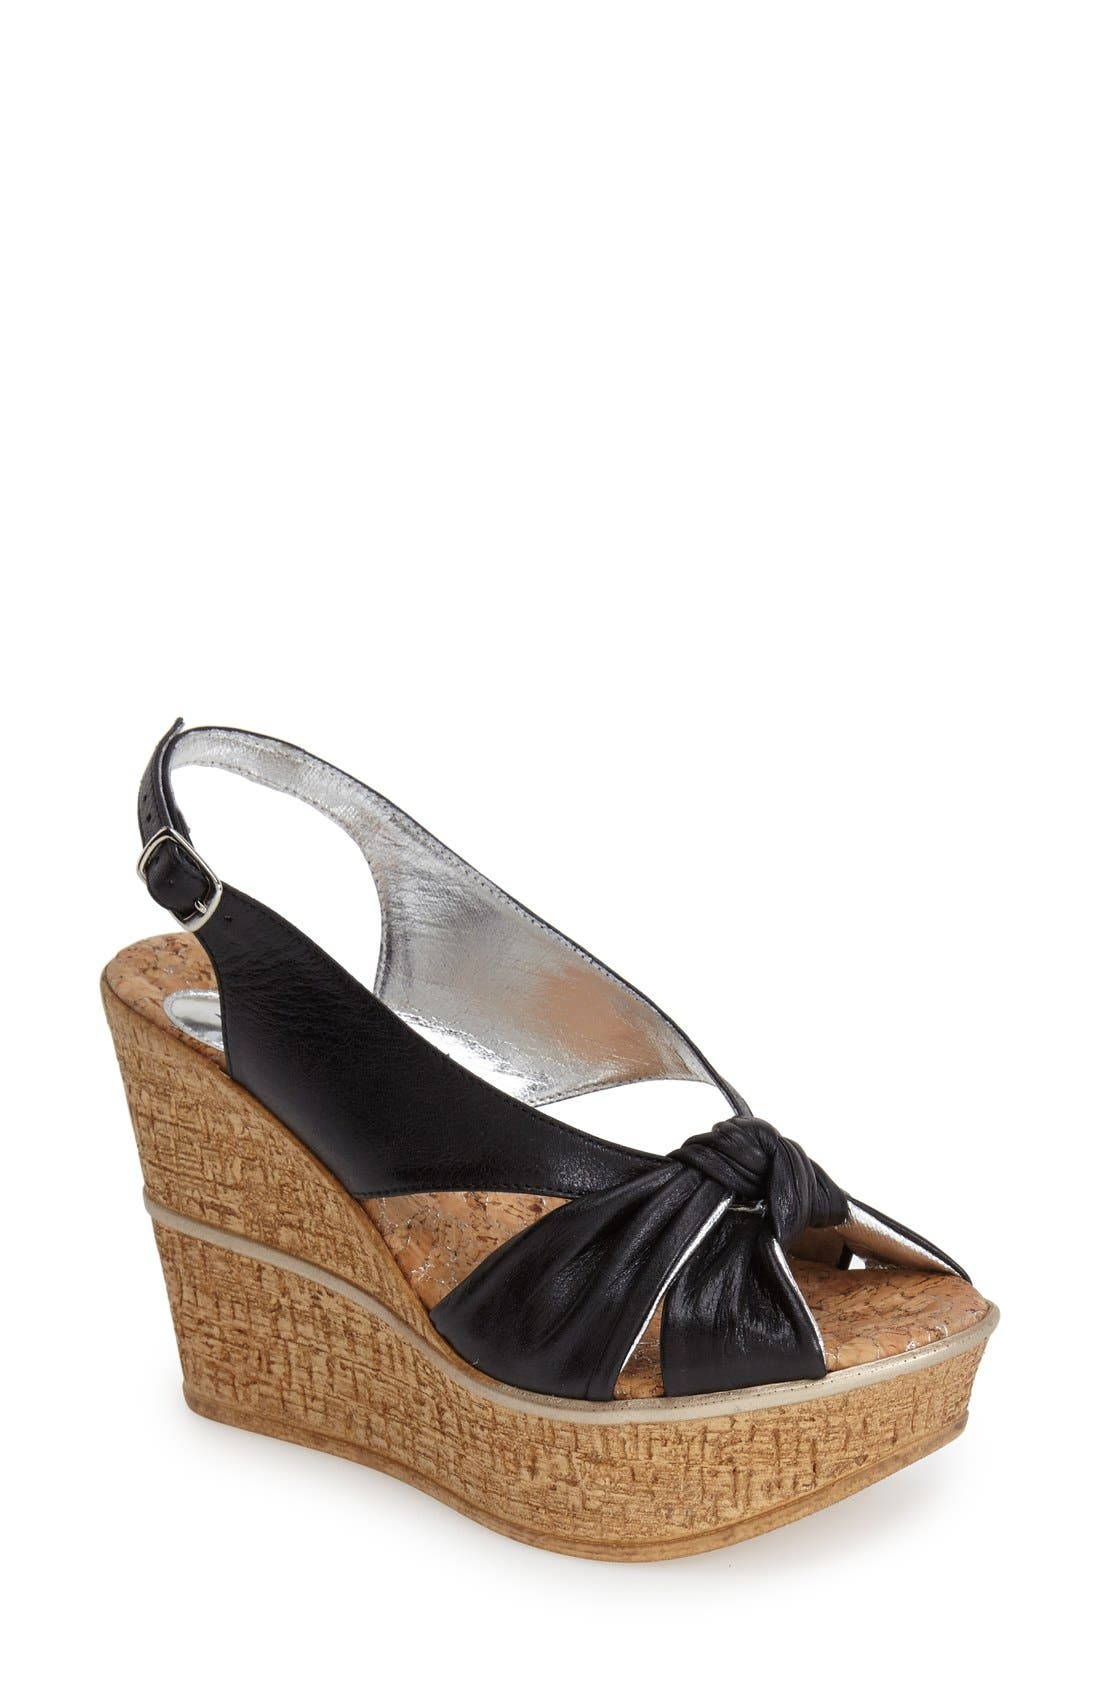 LOVE AND LIBERTY 'Audra' Slingback Wedge